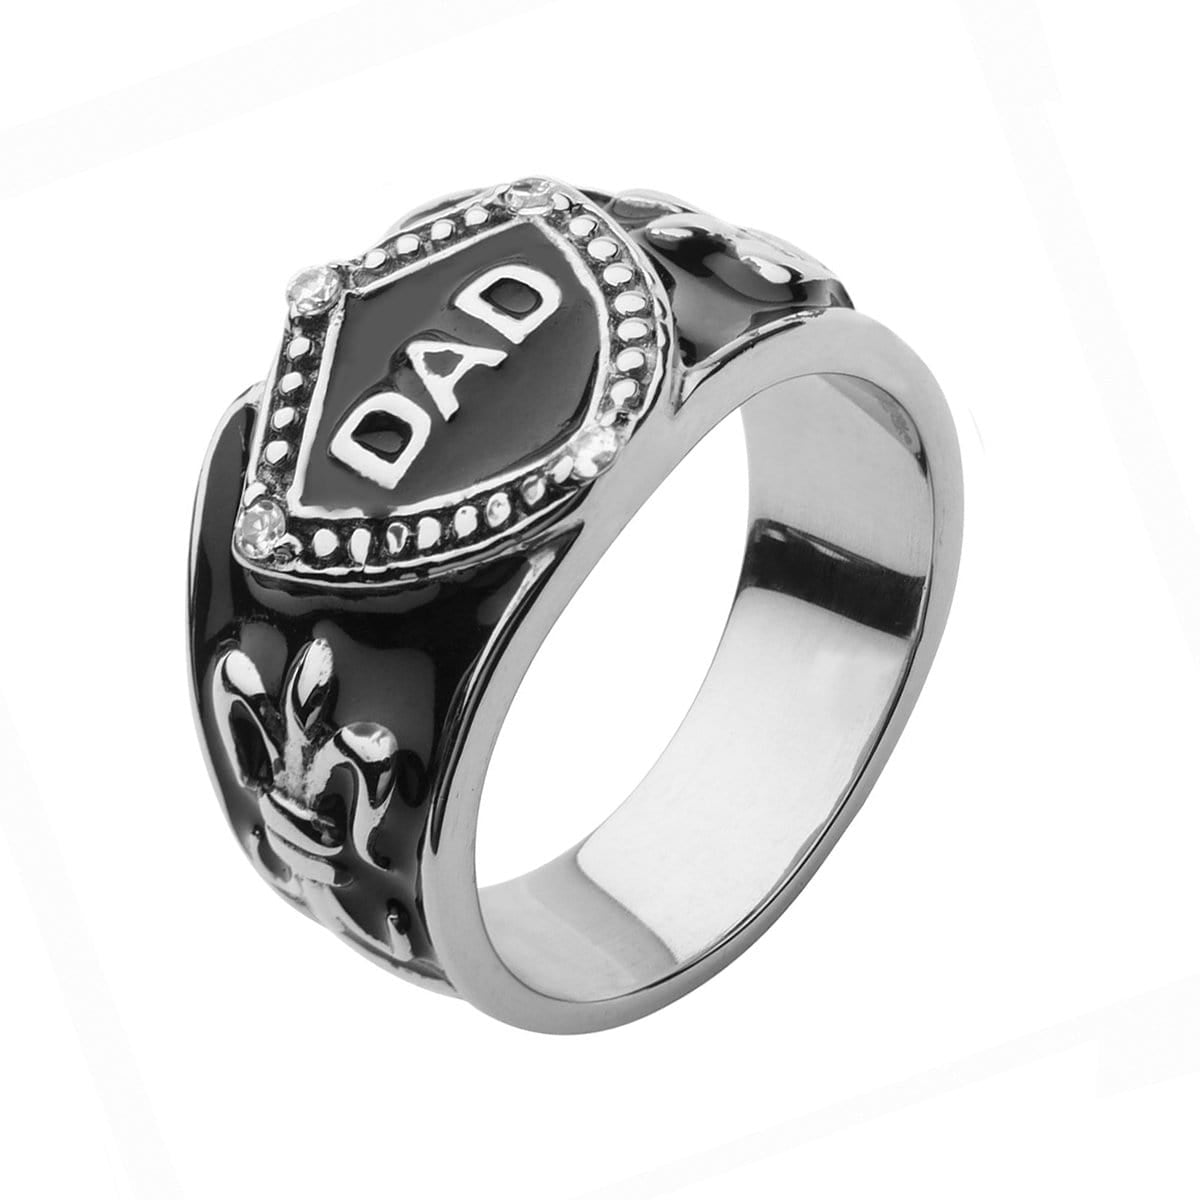 Black & Silver Stainless Steel DAD Ring with Fleur Di Lis Accents